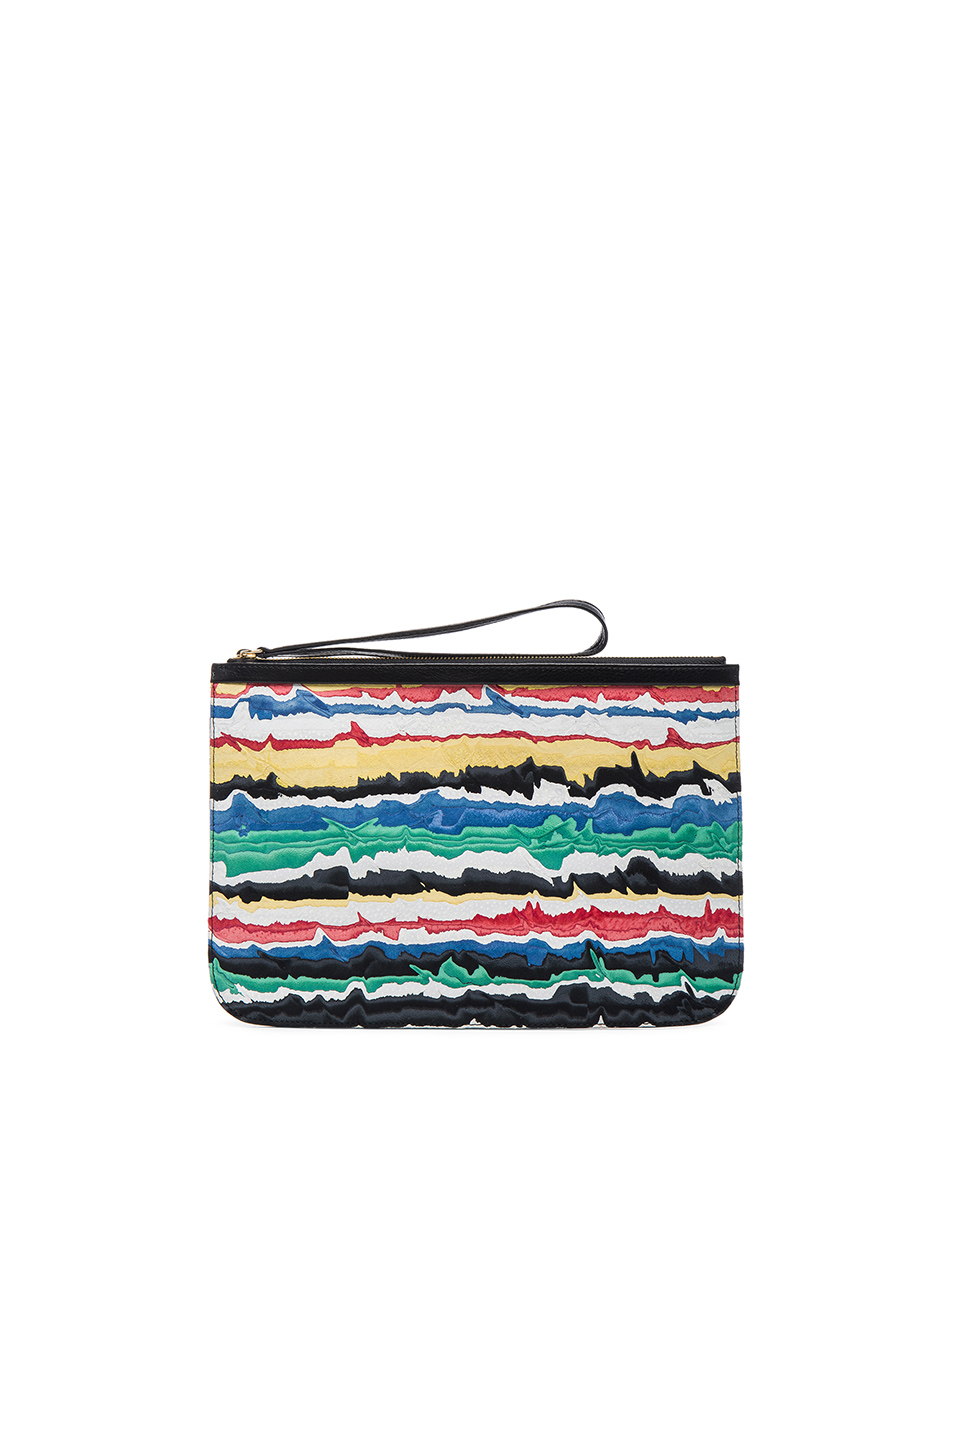 Pierre Hardy Alpha Pouch in Black,Abstract